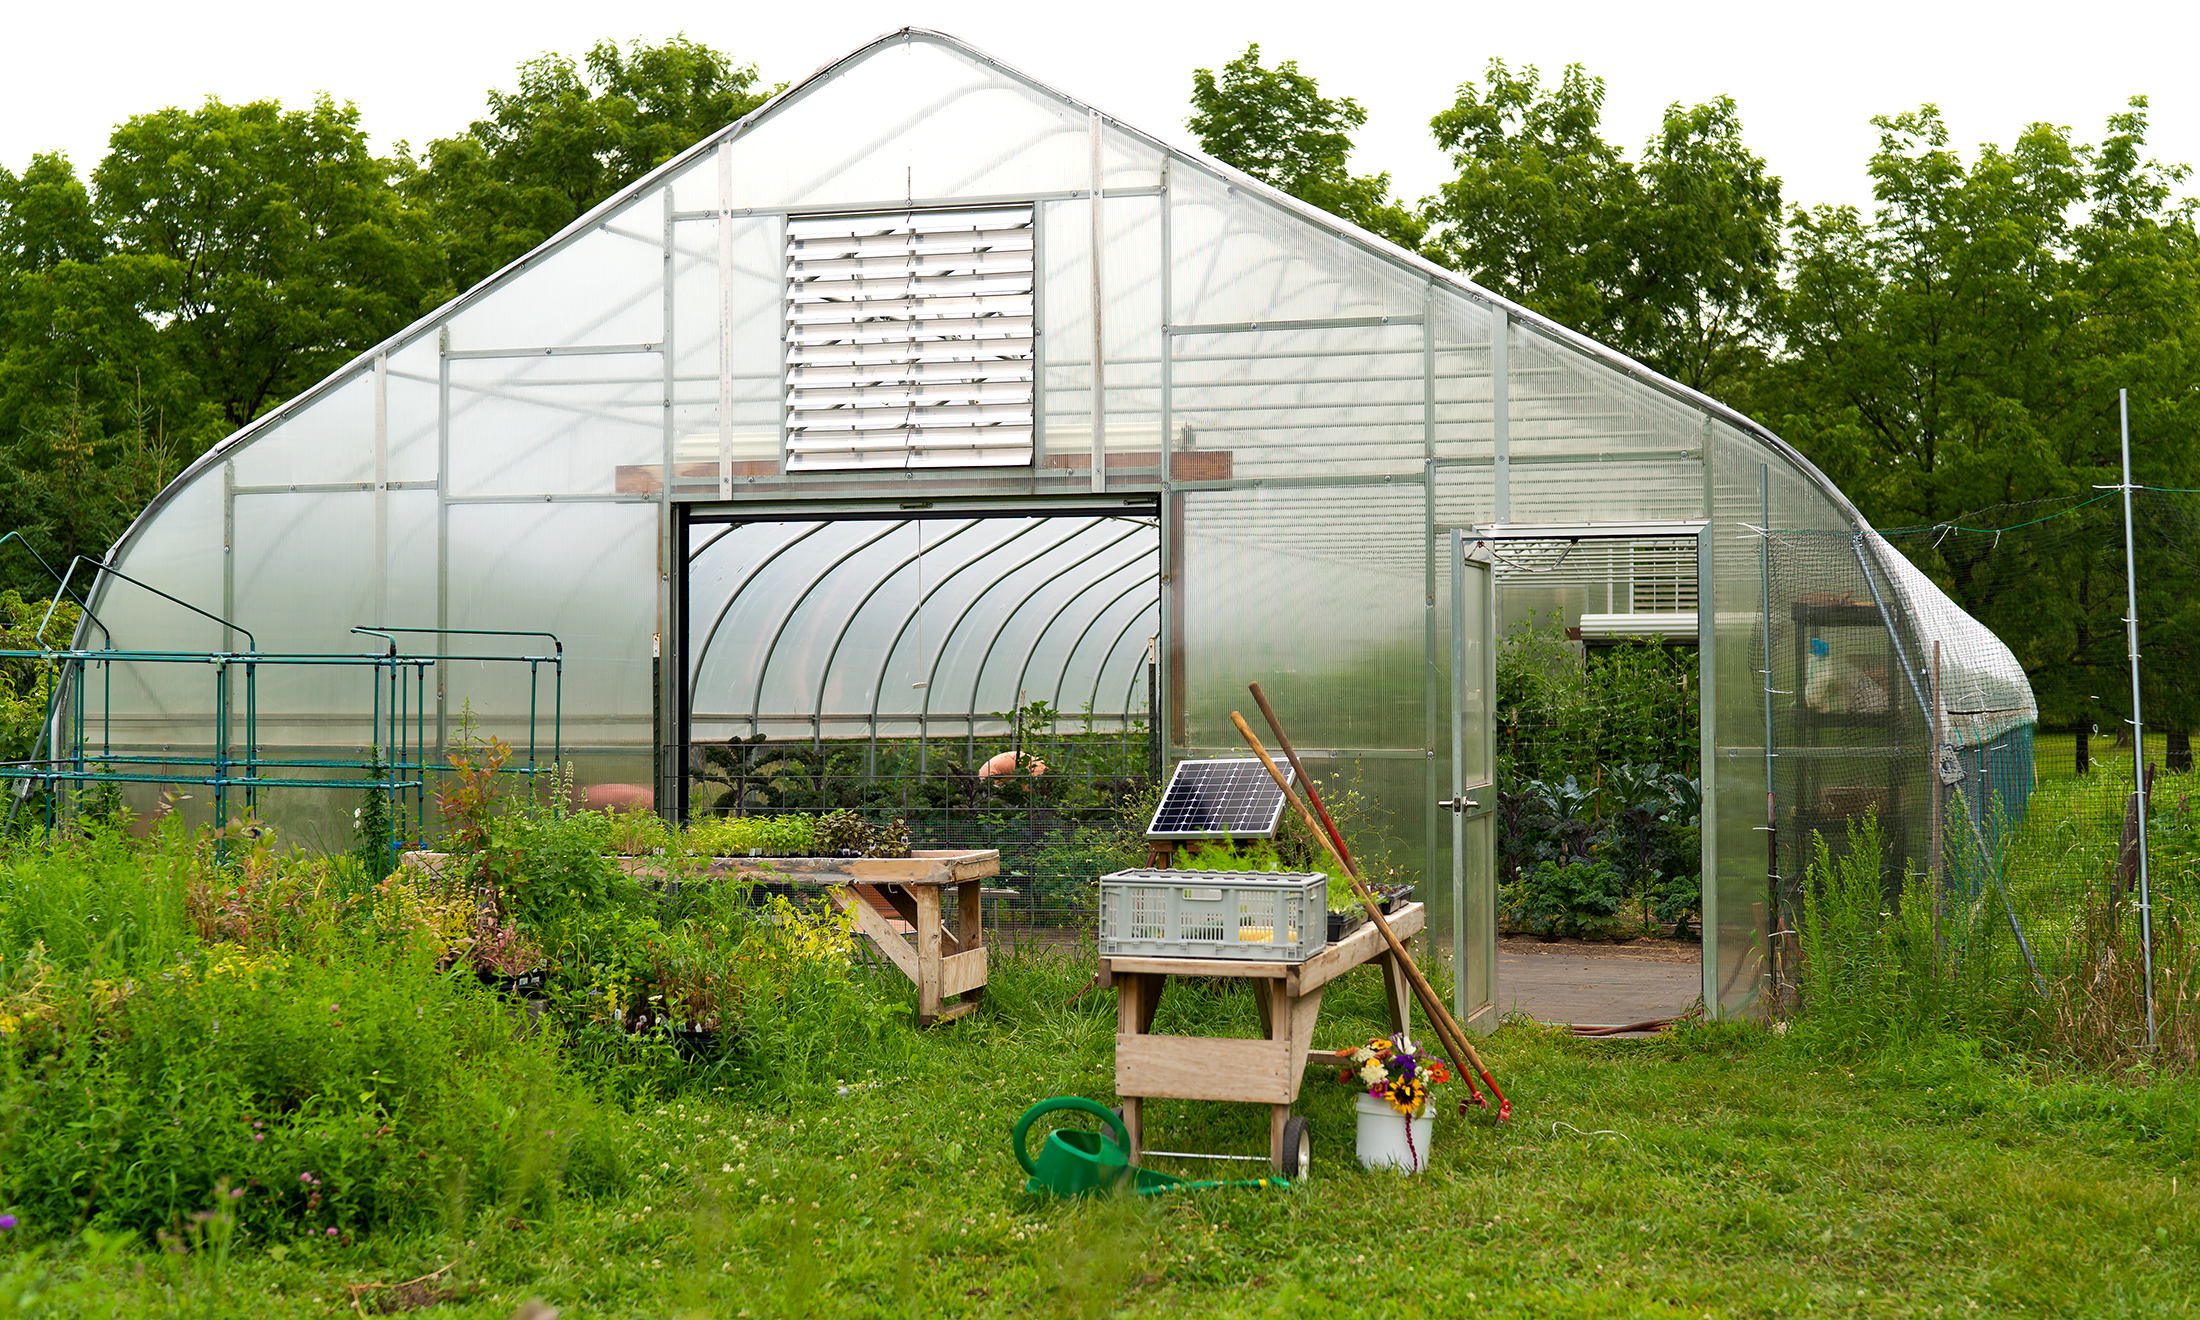 Campus Student Organic Farm crowdfunding campaign